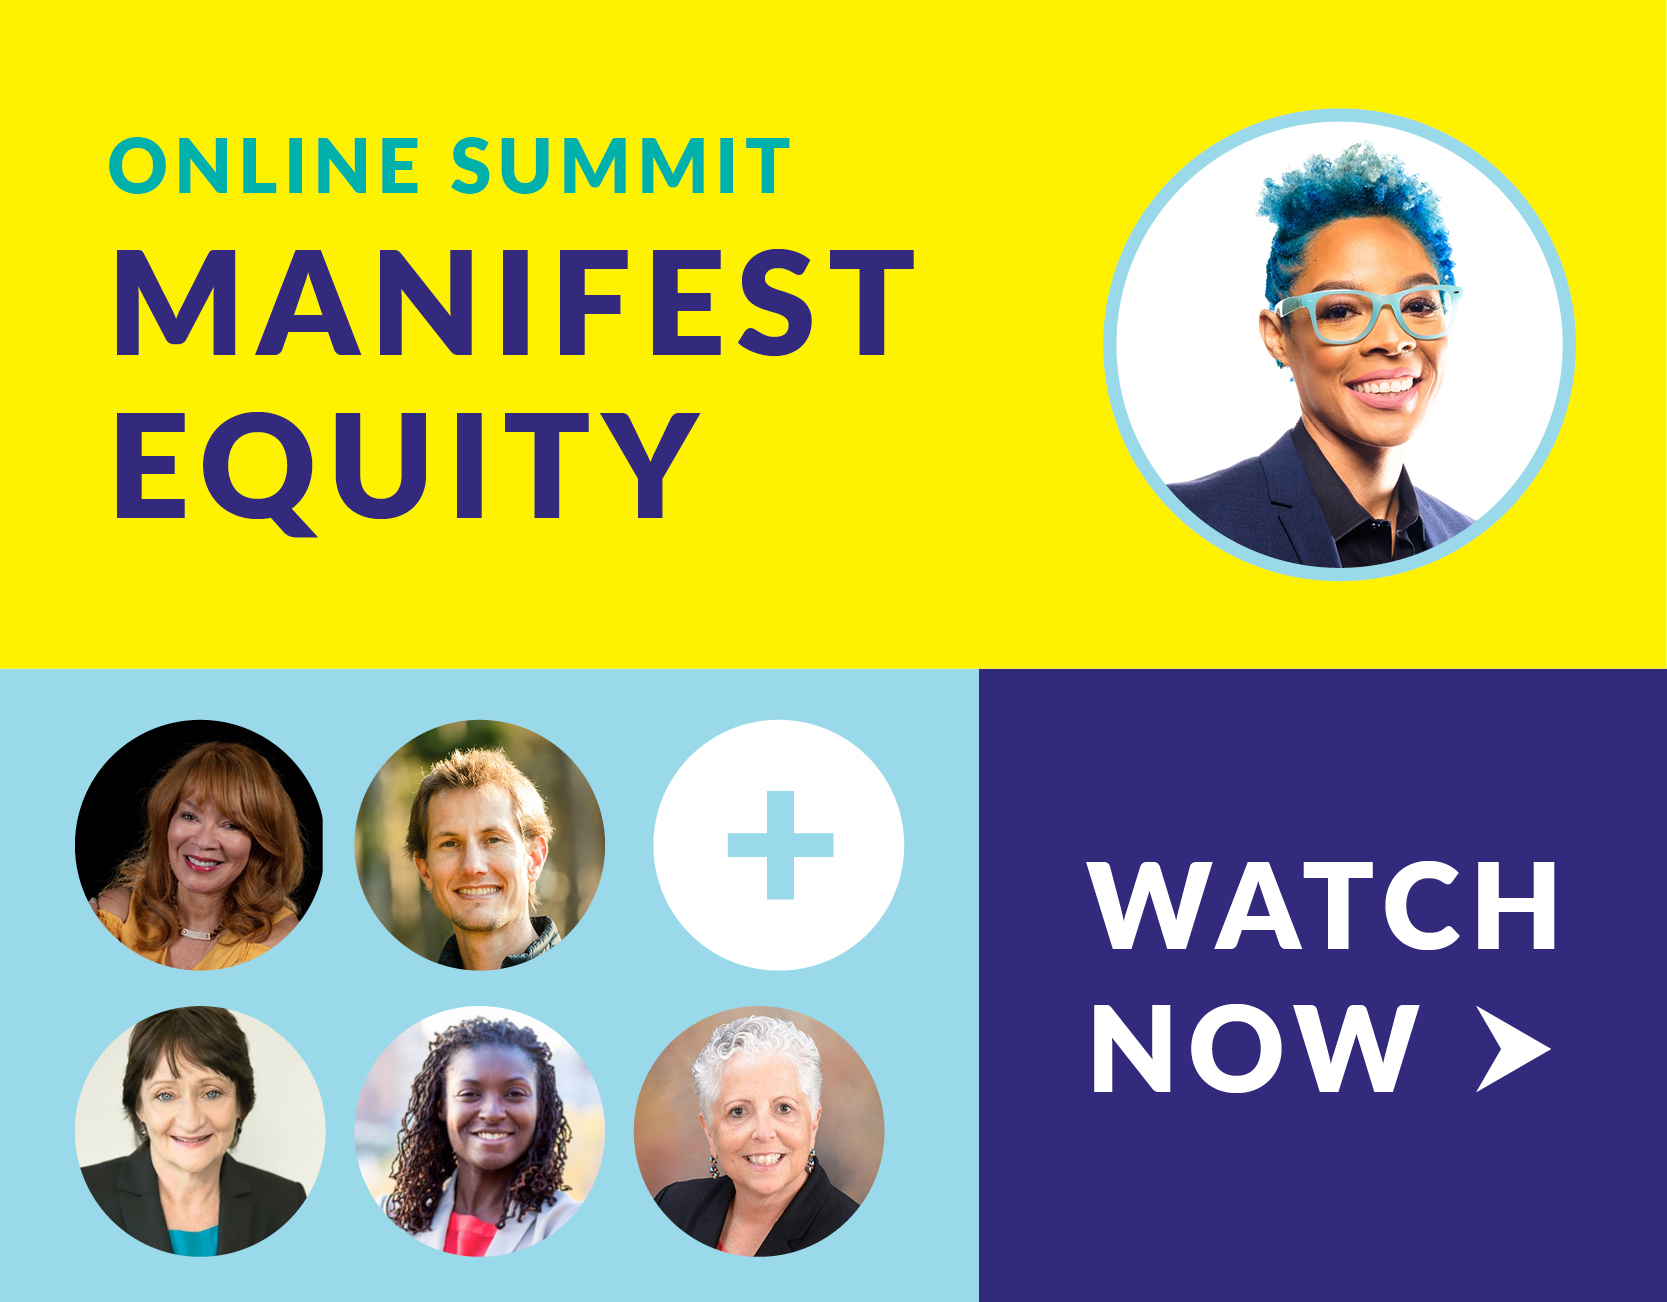 Click to Watch the Manifest Equity Online Summit Now